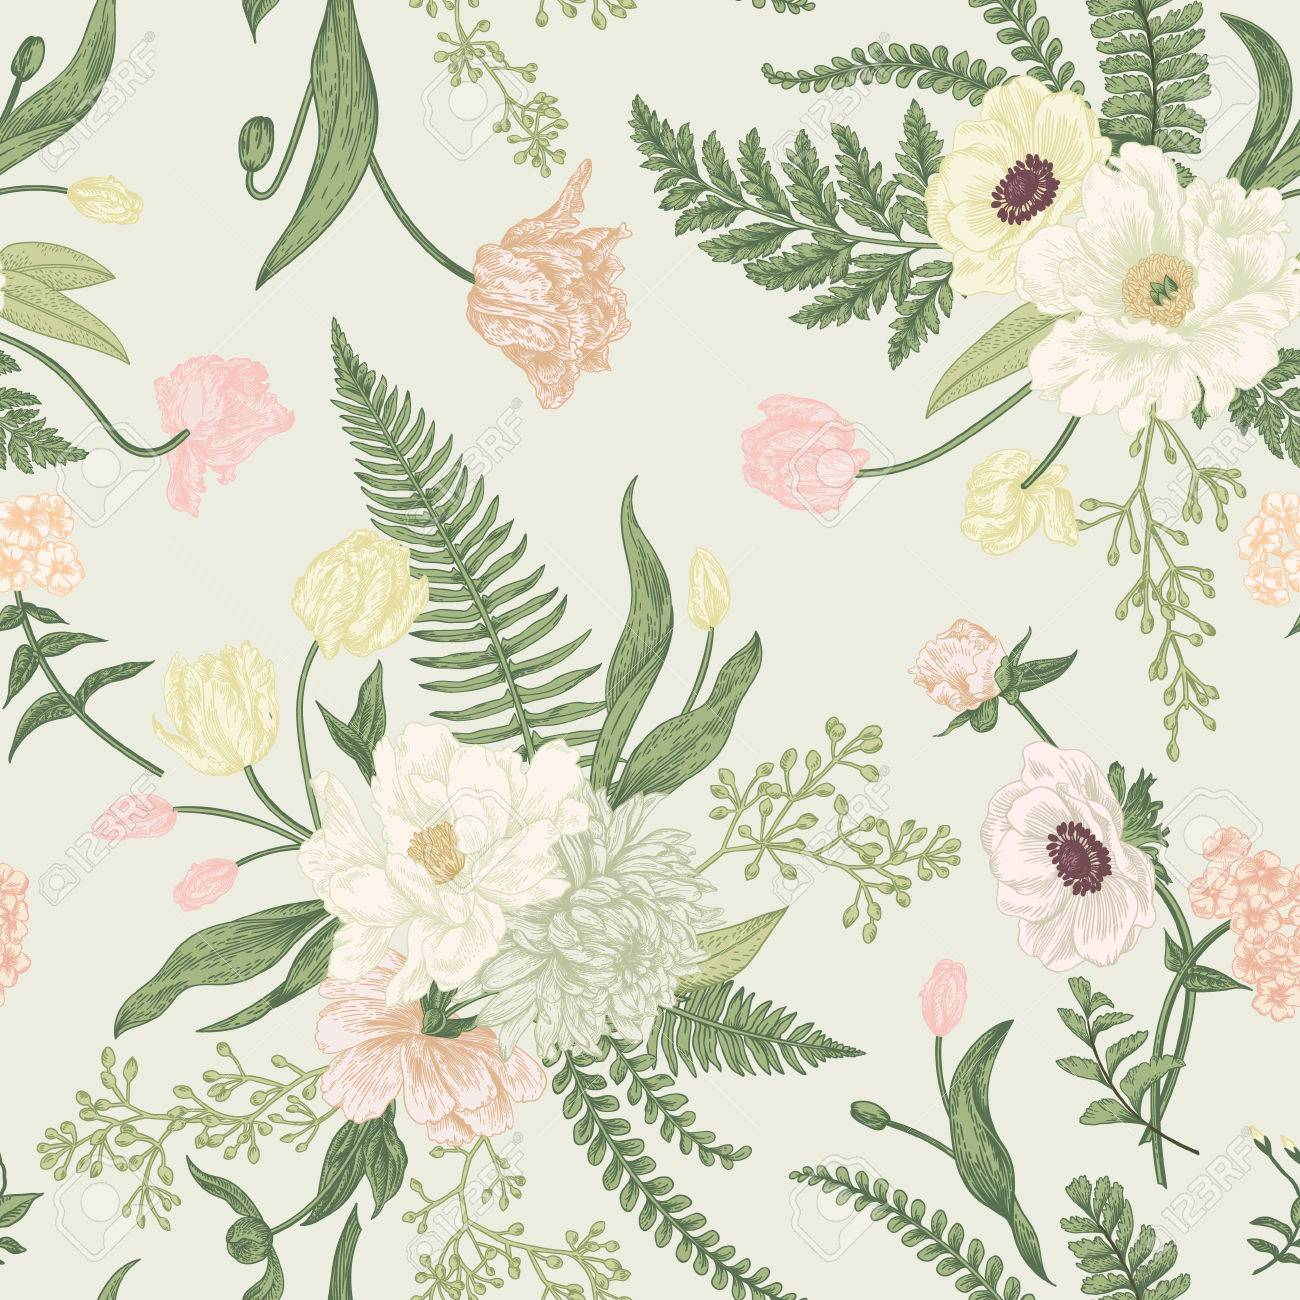 Seamless floral pattern with bouquets of spring flowers. Vintage background. Peony, ferns, tulips, anemones, chrysanthemum eucalyptus seeds. Pastel colors. - 77103864